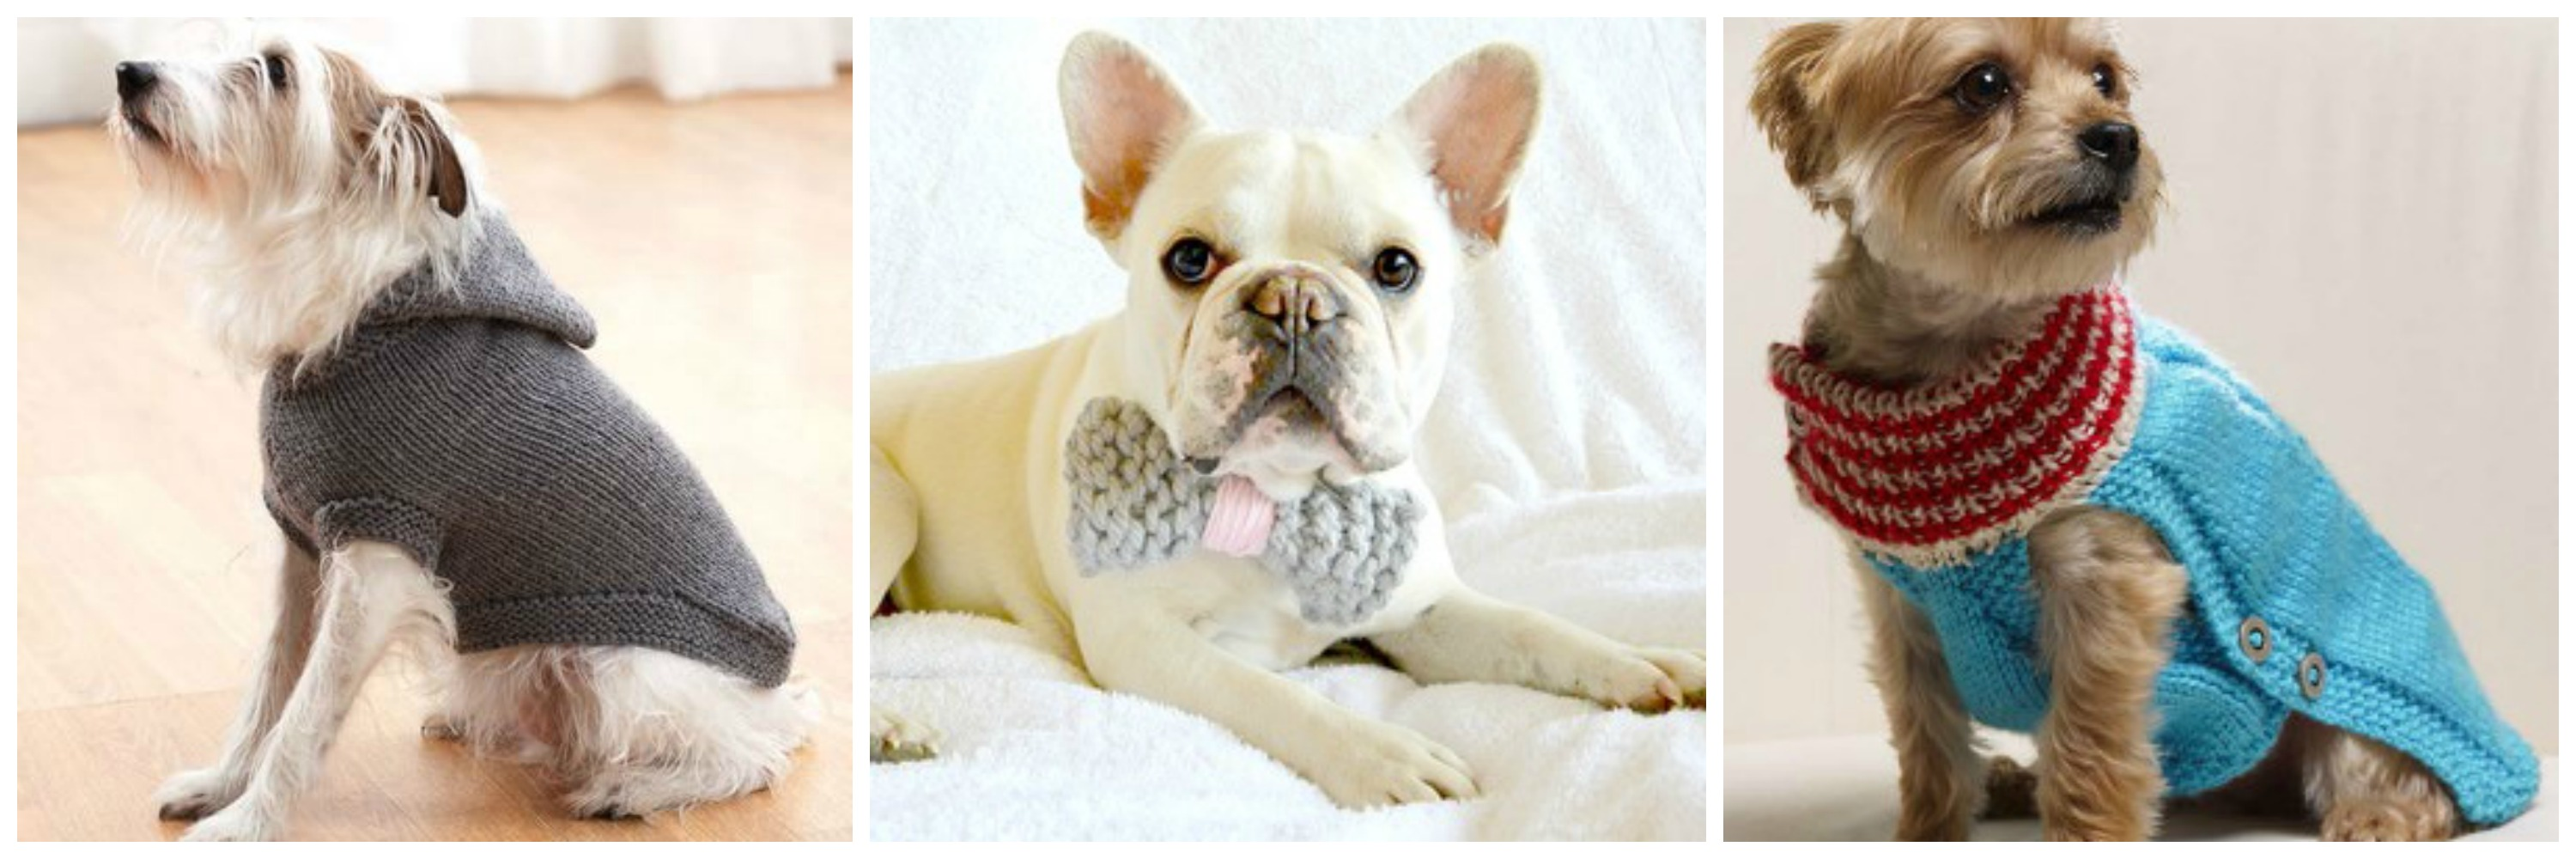 Learn How to Knit a Dog Sweater & BONUS GIVEAWAY - Stitch and Unwind